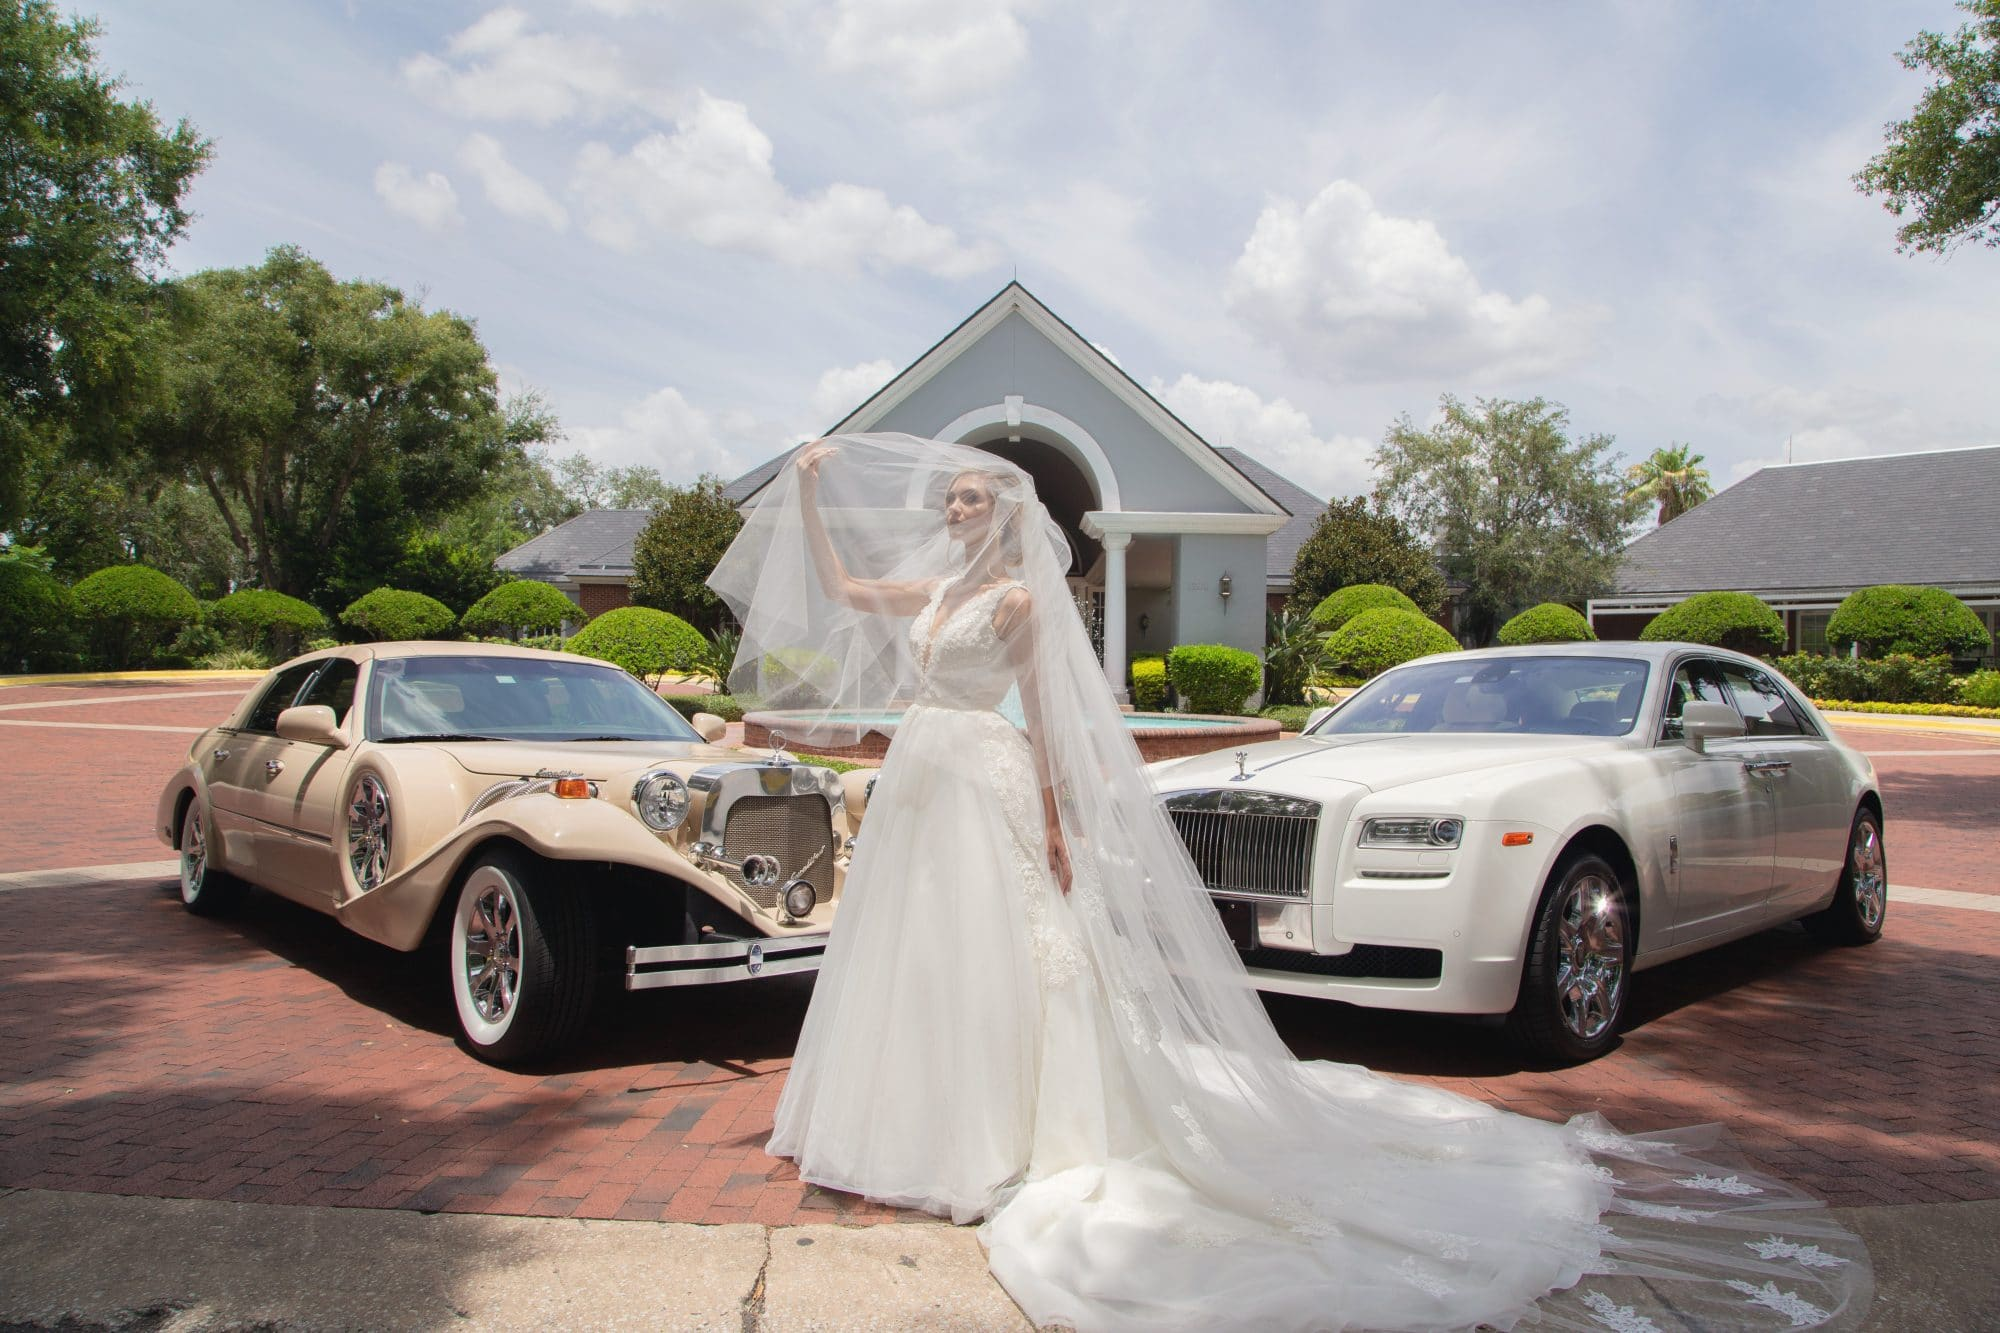 Wedding Limo Orlando - With Bride